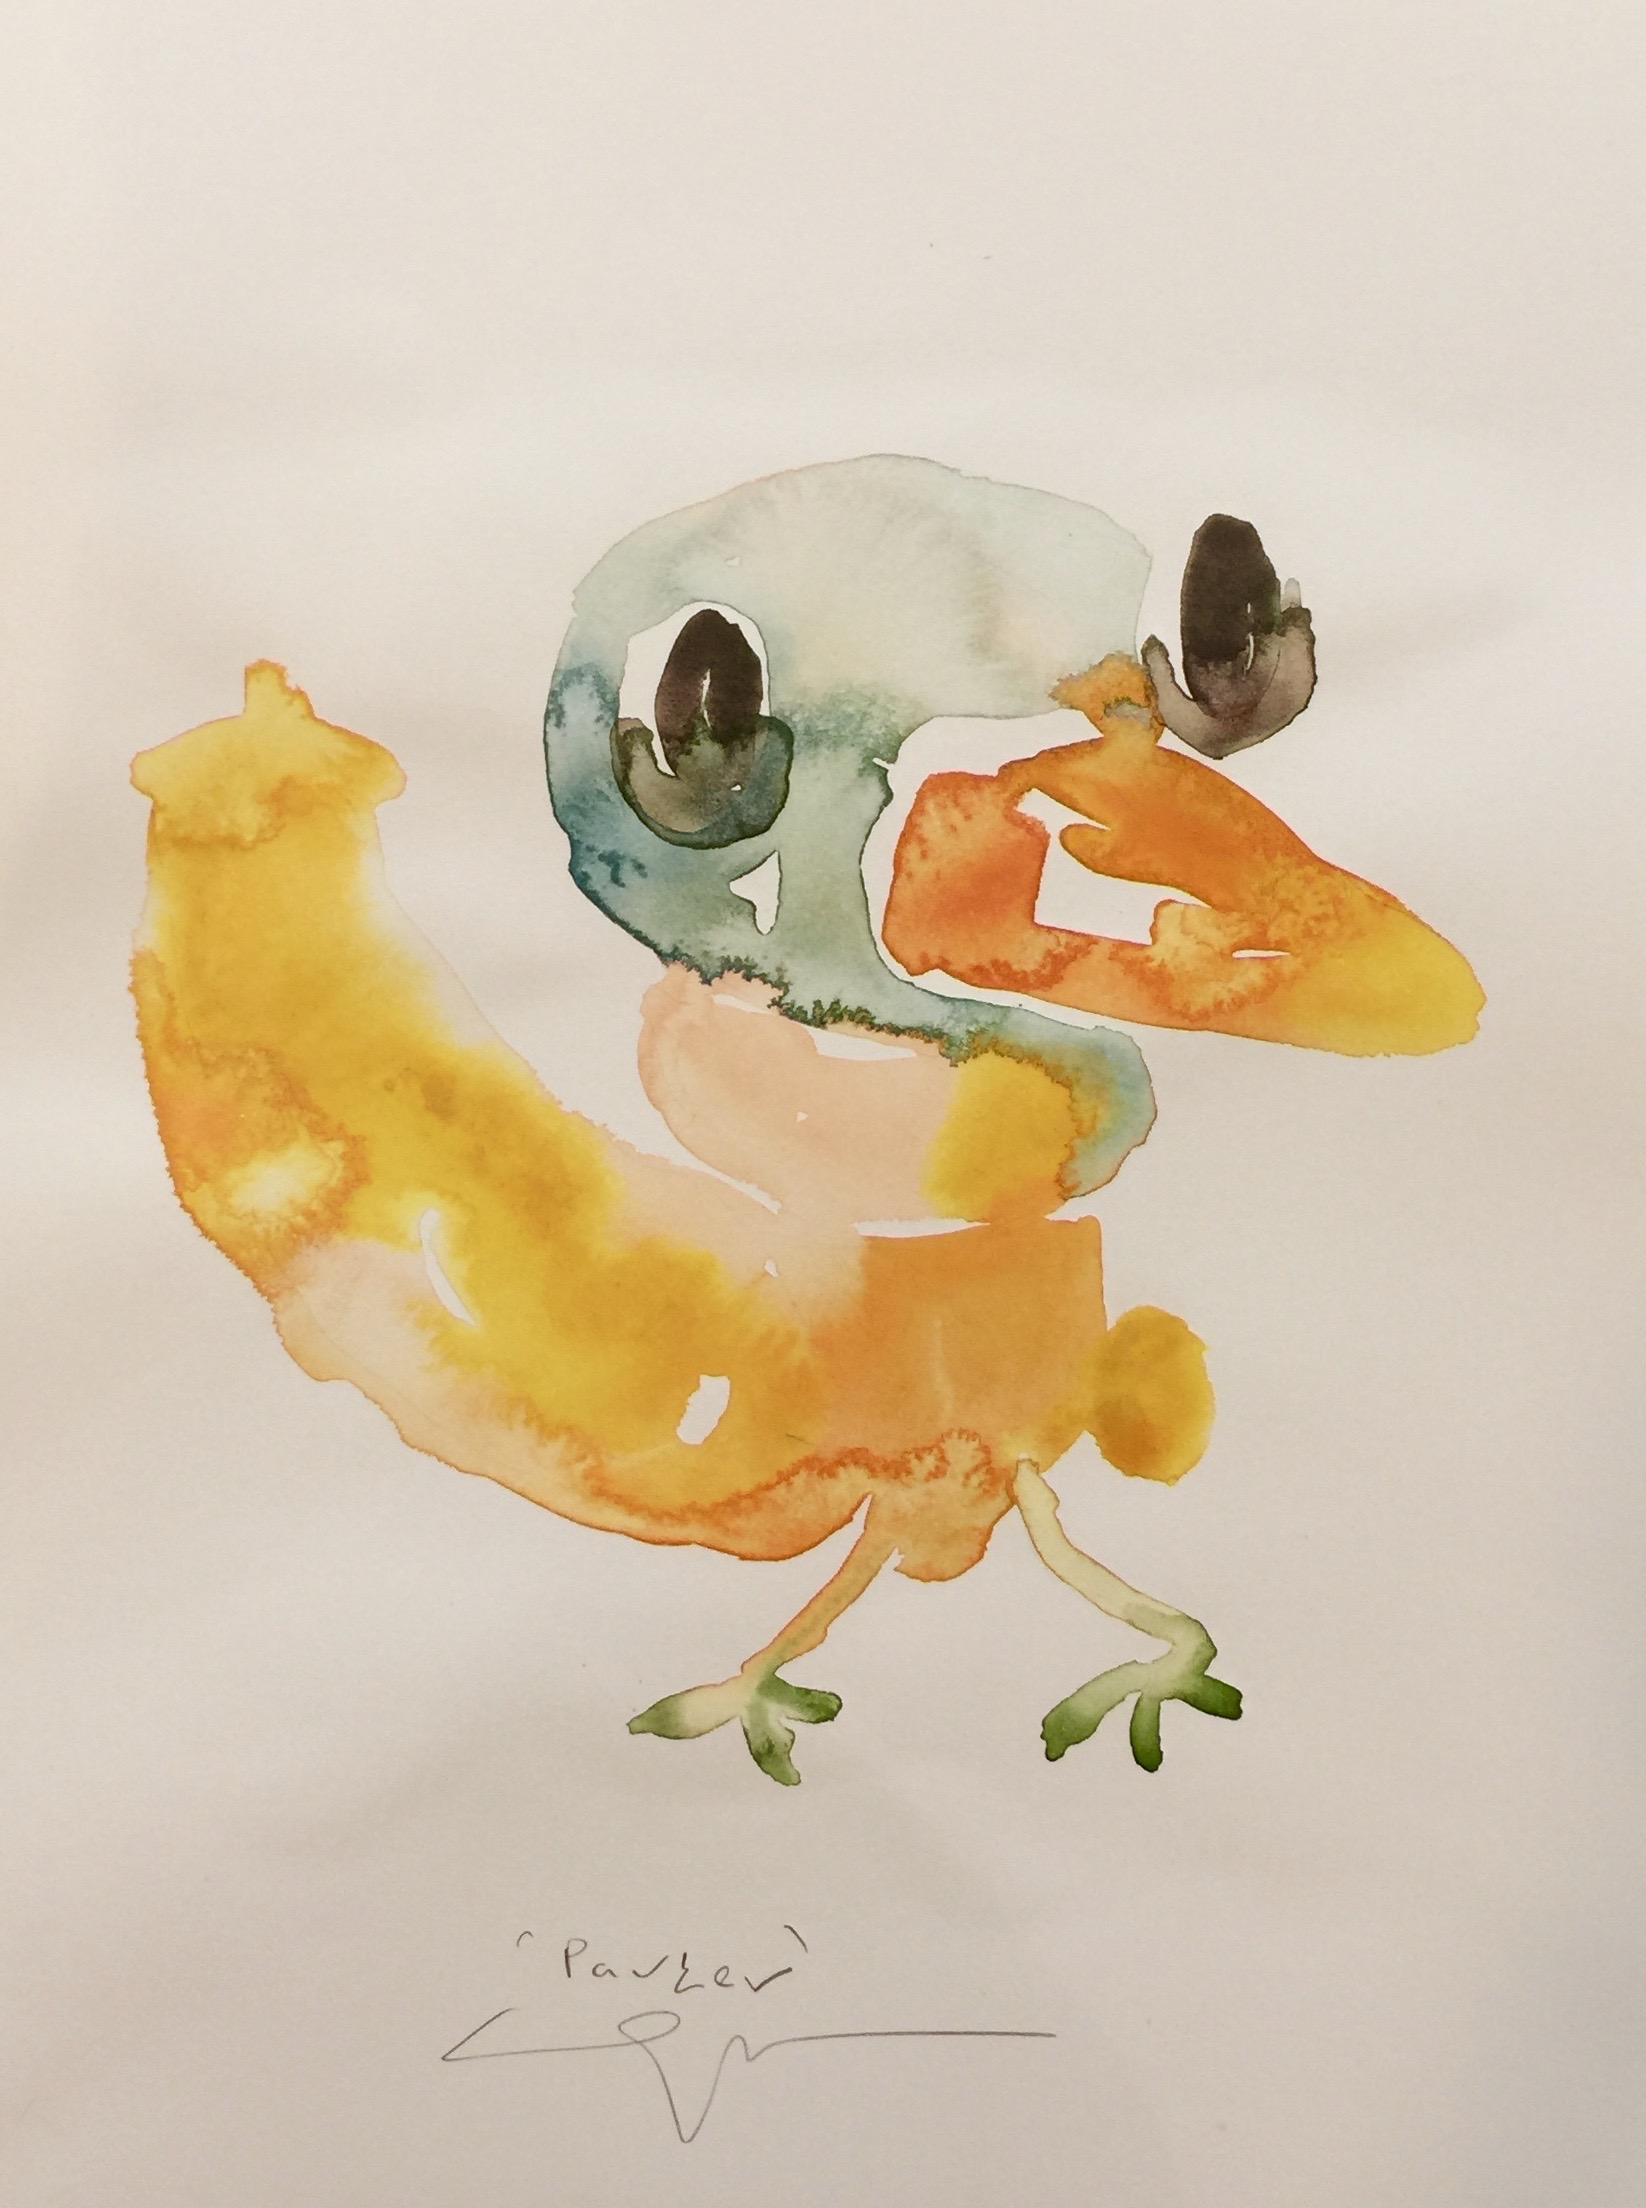 Peter Opheim   Parker   2019  Watercolor on paper  Signed and titled by the artist in pencil  Sheet: 16 x 12 inches  Framed: 17 x 13 inches